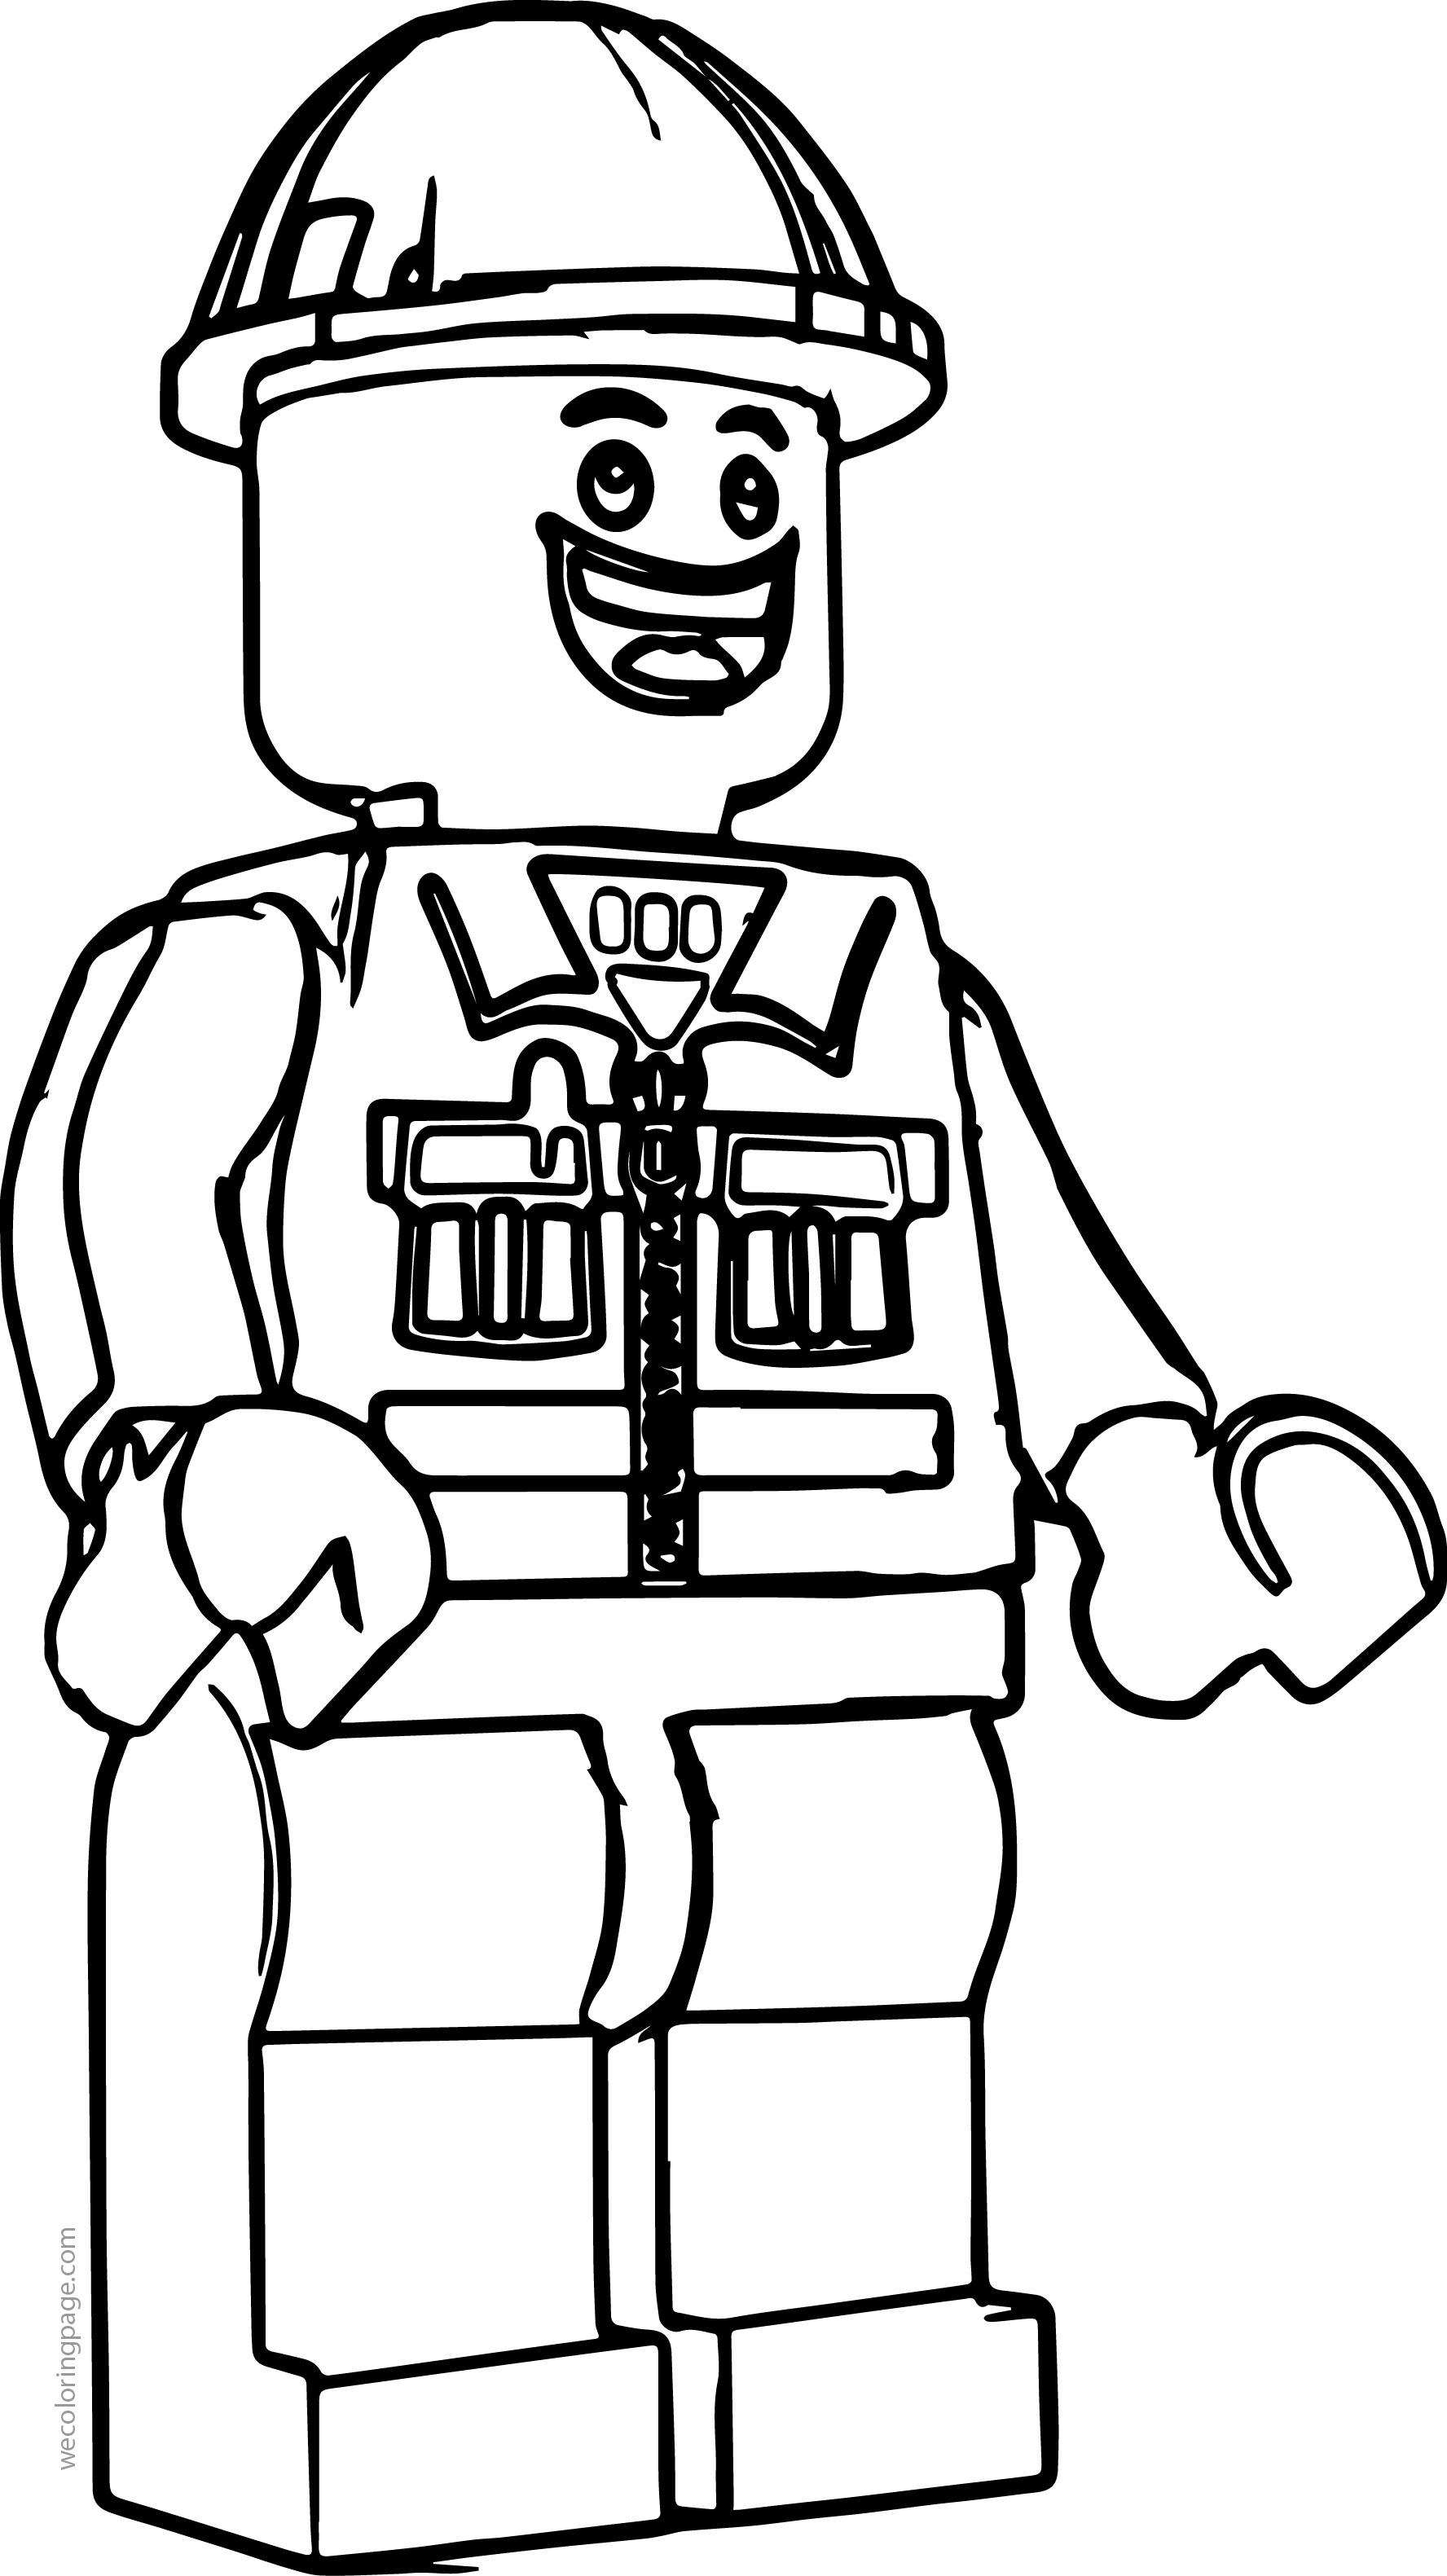 Lego Construction Worker Coloring Page | Wecoloringpage